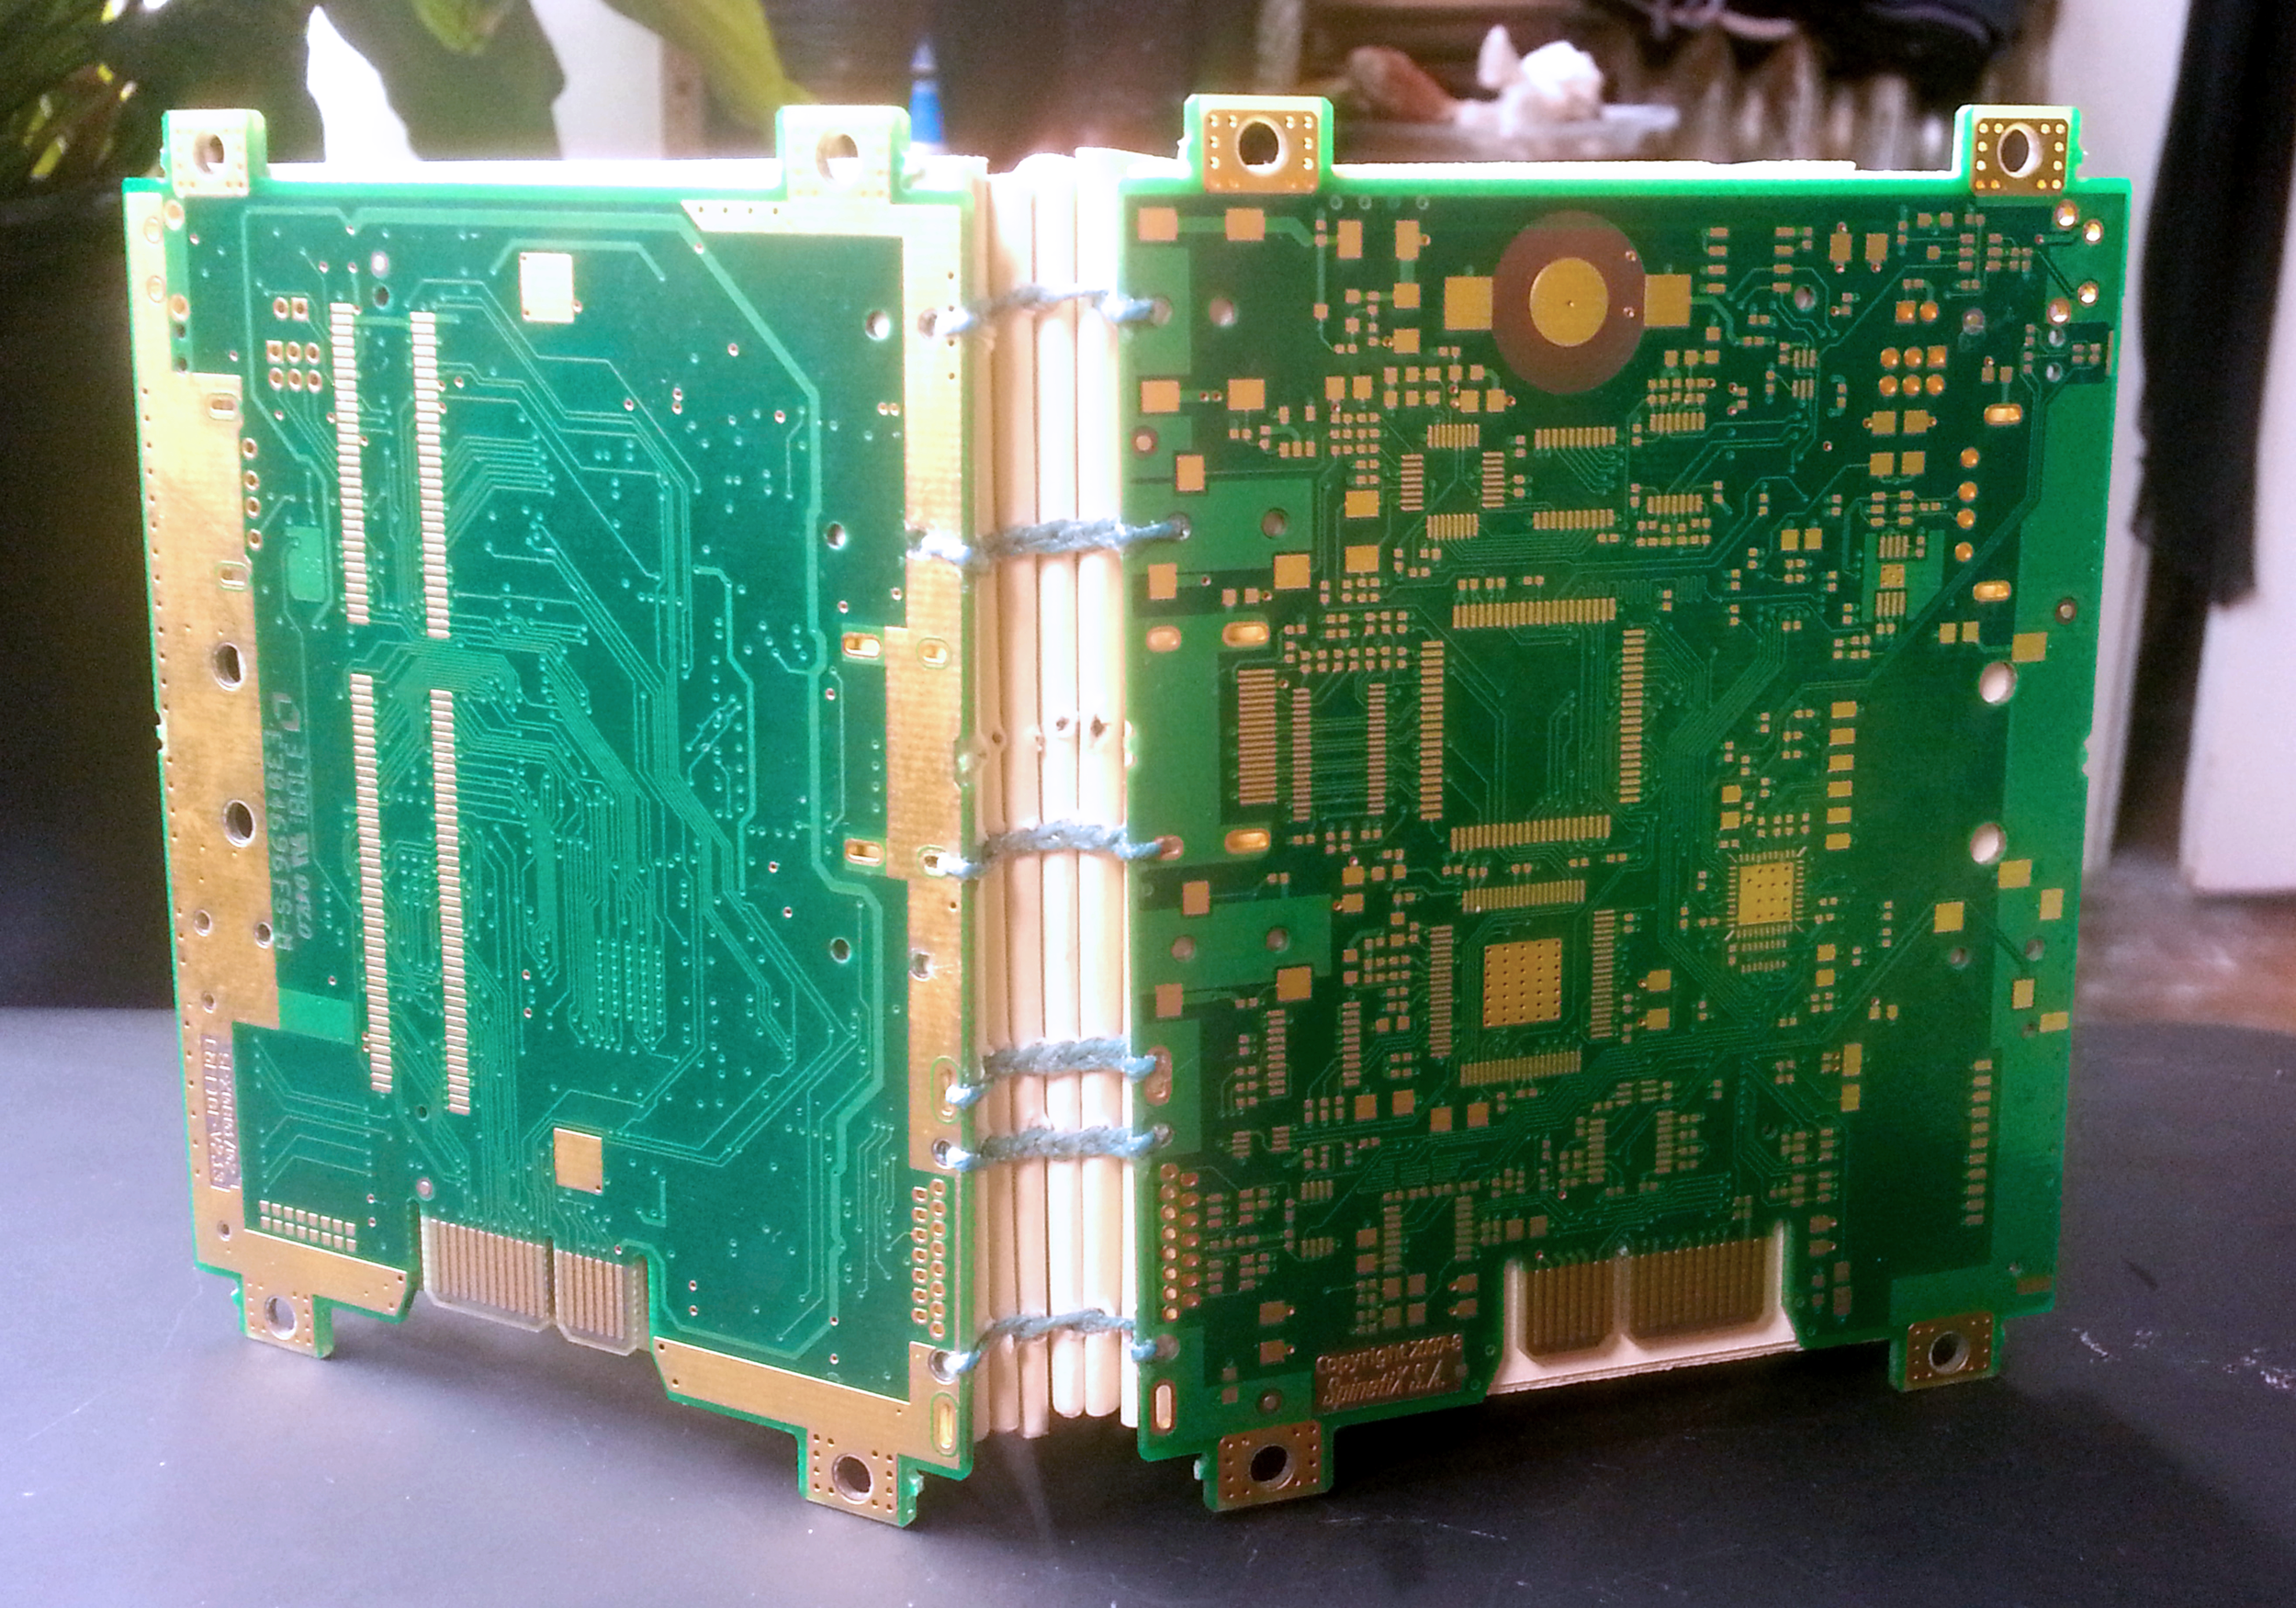 We used outdated circuit boards for the covers, which I thought was pretty cool considering  how ancient this type of binding is.